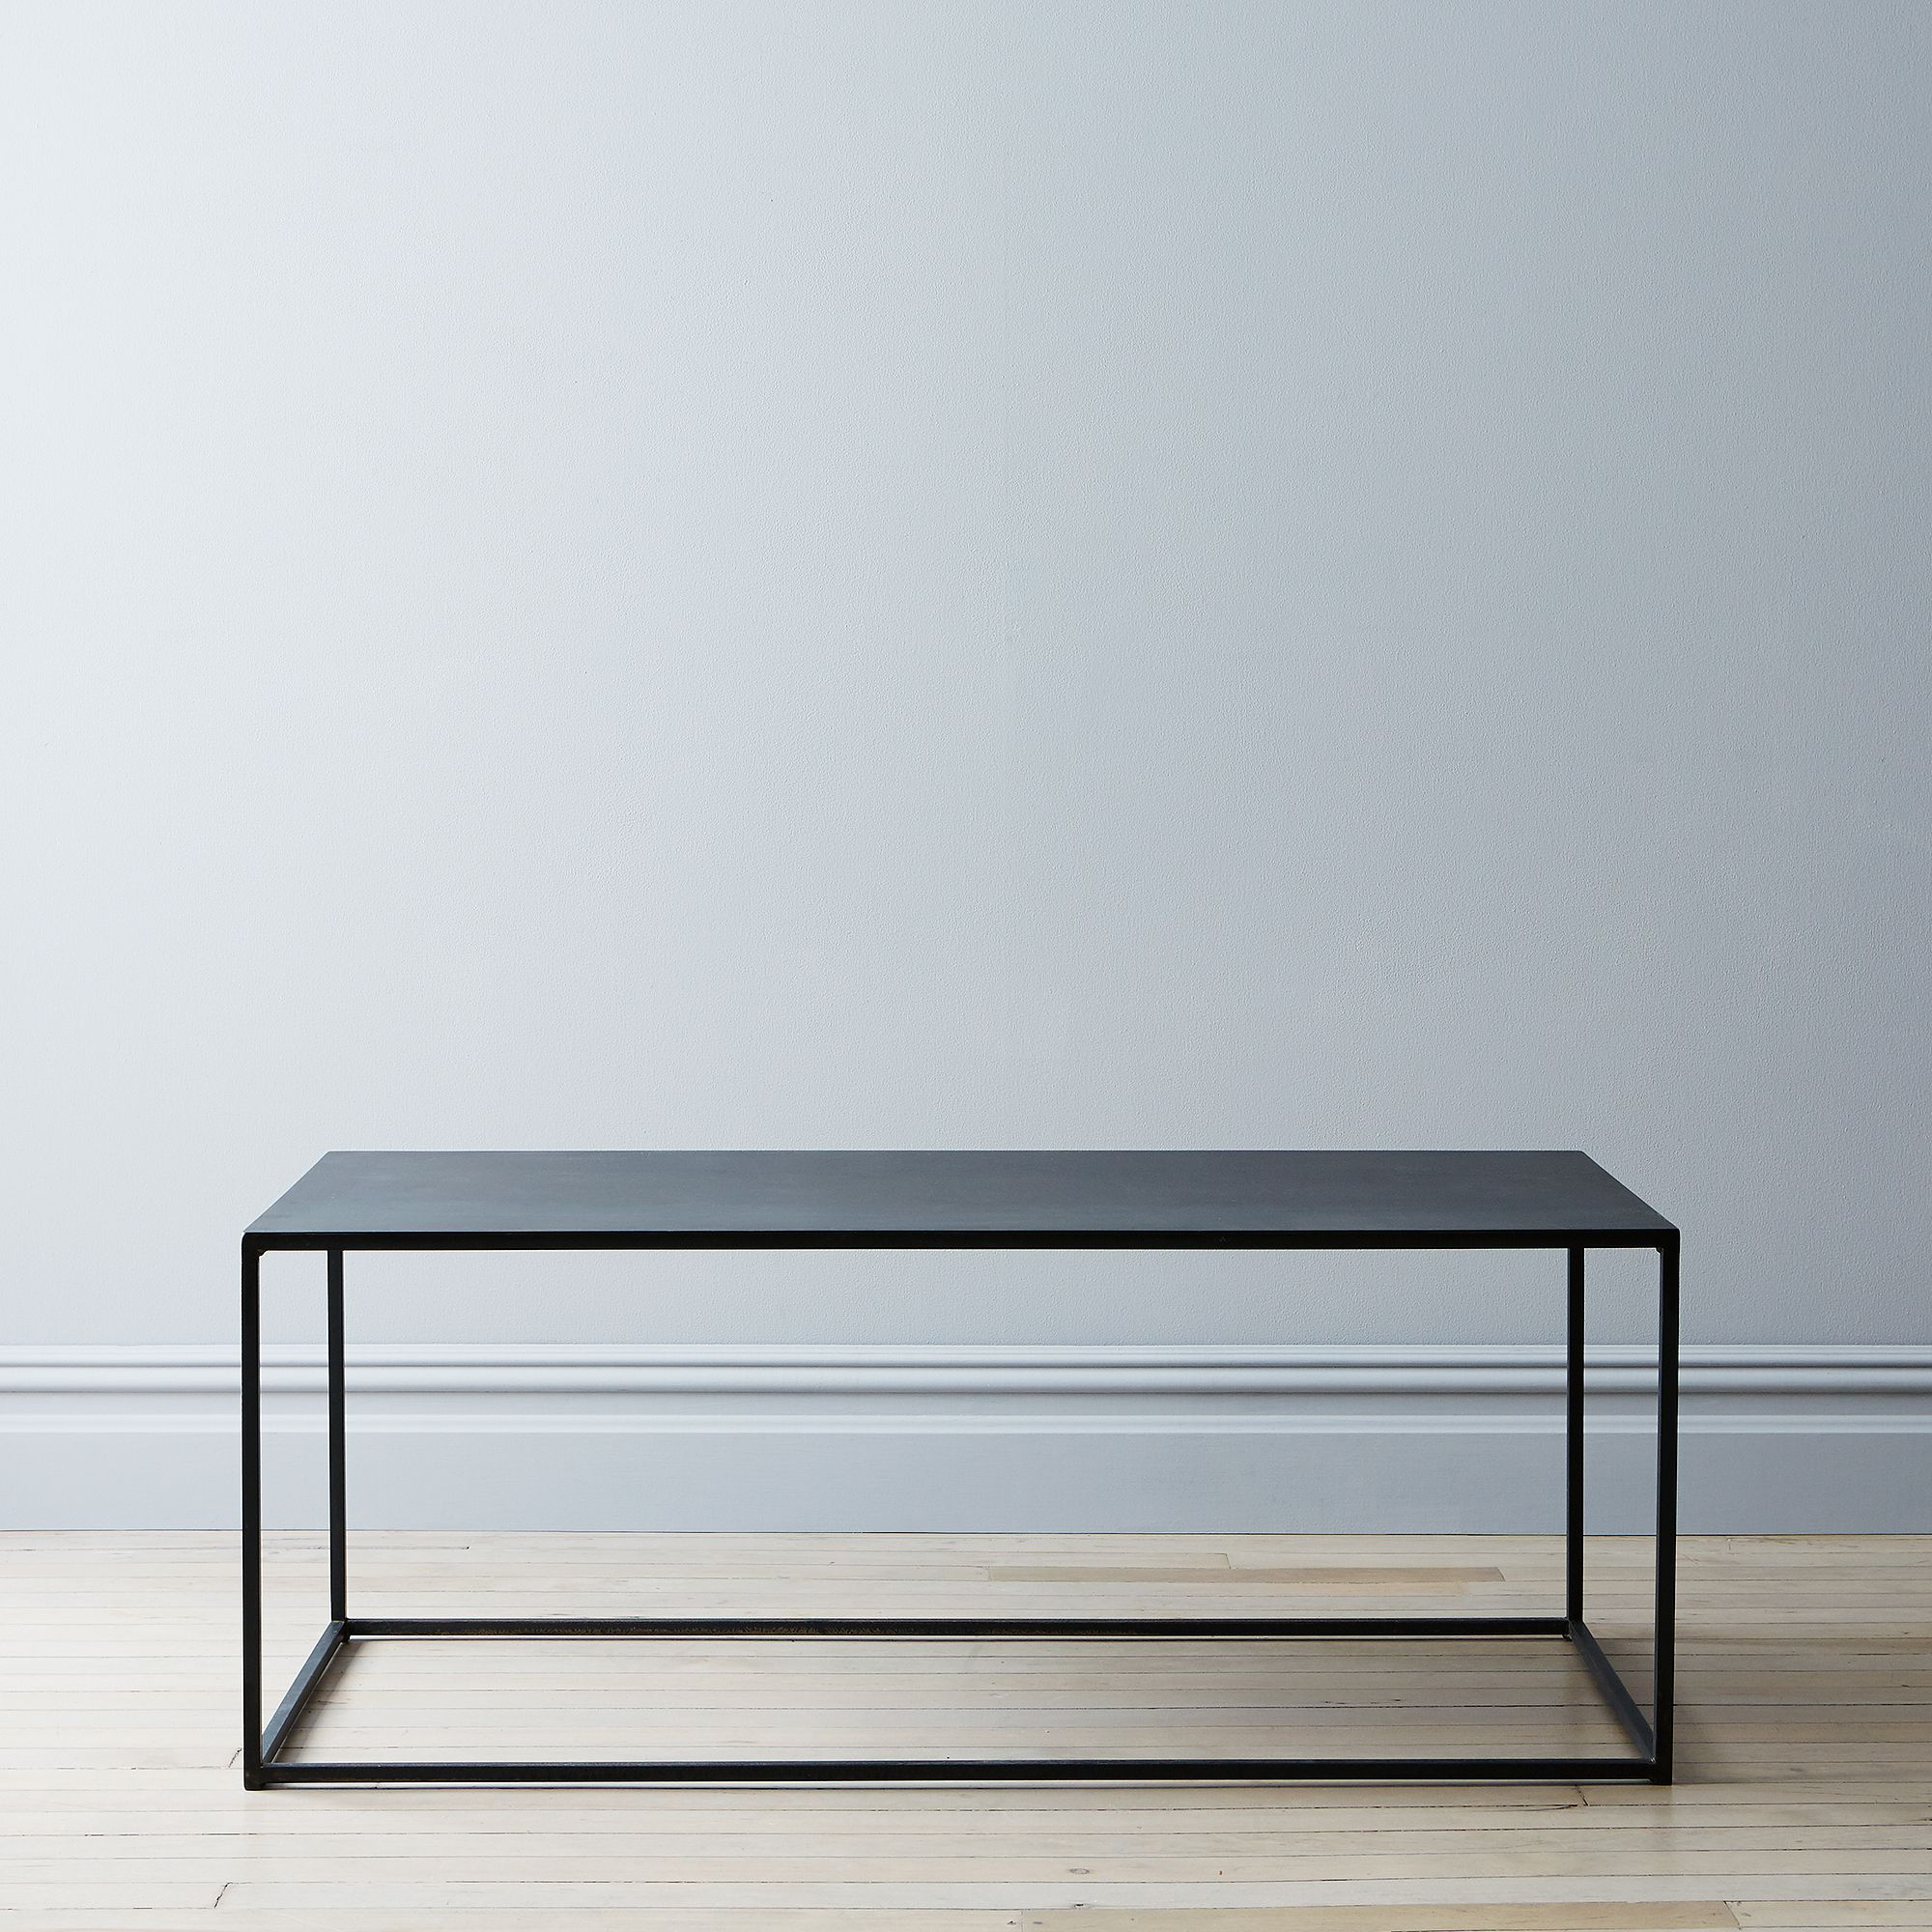 74438786 90e0 4d75 ba5e 3bf0897c5917  2015 0429 brad sherman designs coffee table silo mark weinberg 0267